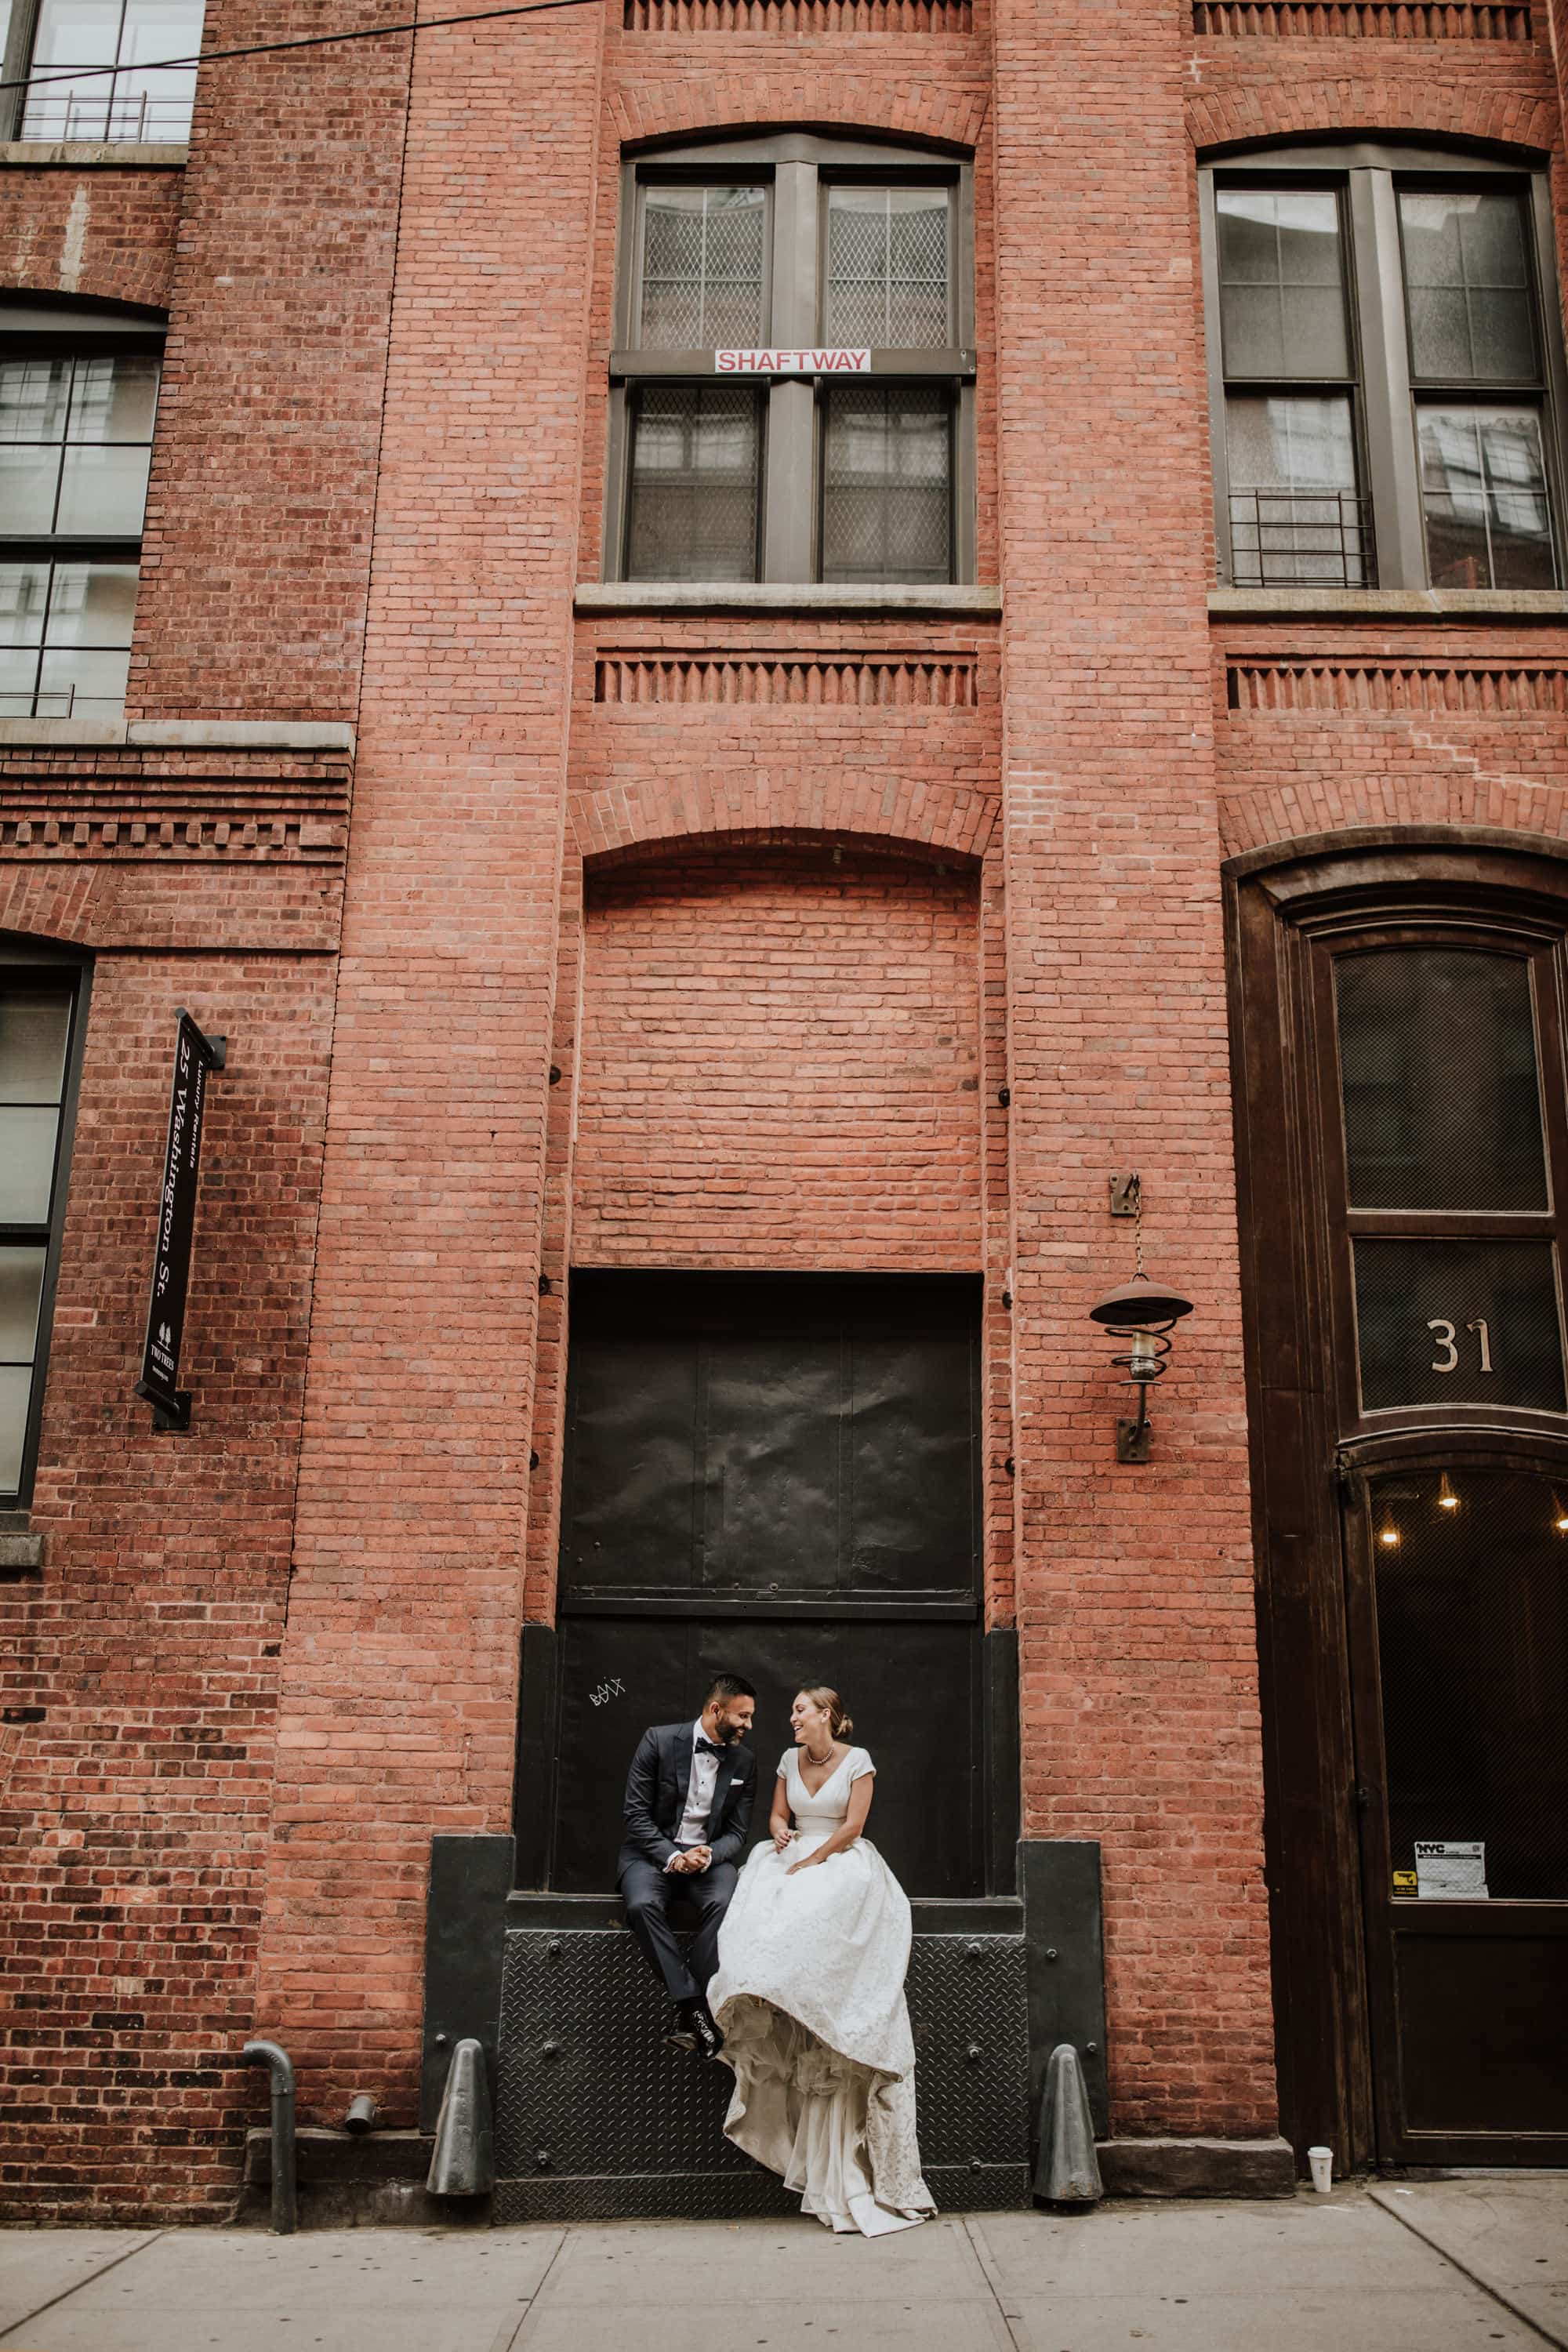 The bride and groom take a break at a loading dock in Brooklyn, New York, during their New York City Elopement. Wedding Photographer Brent Calis.